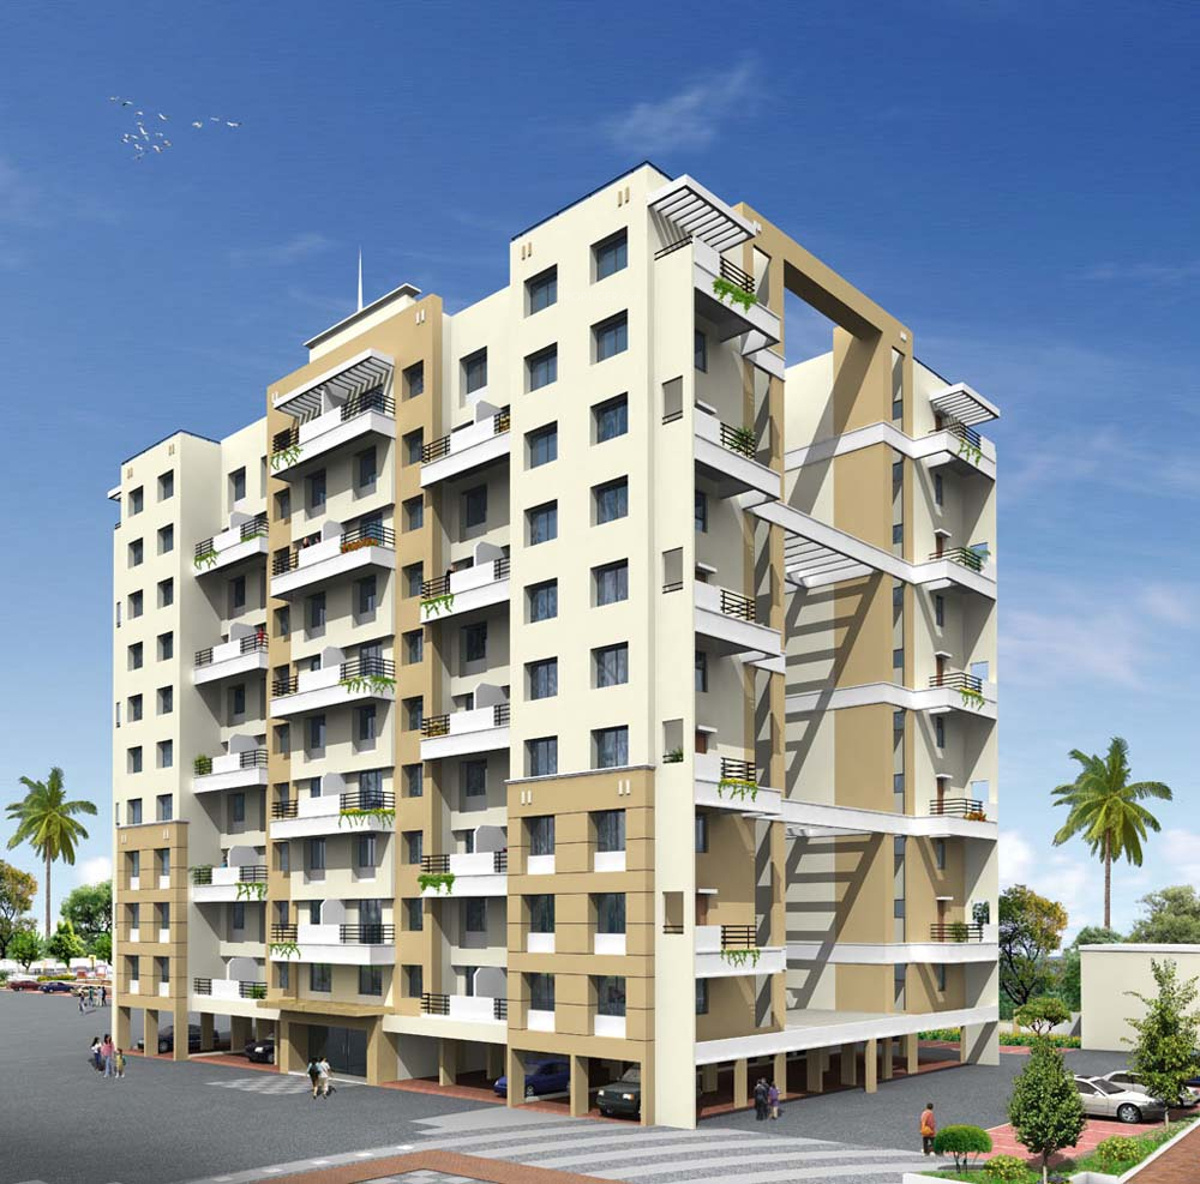 625 Sq Ft 1 BHK 1T Apartment For Sale In Raojee